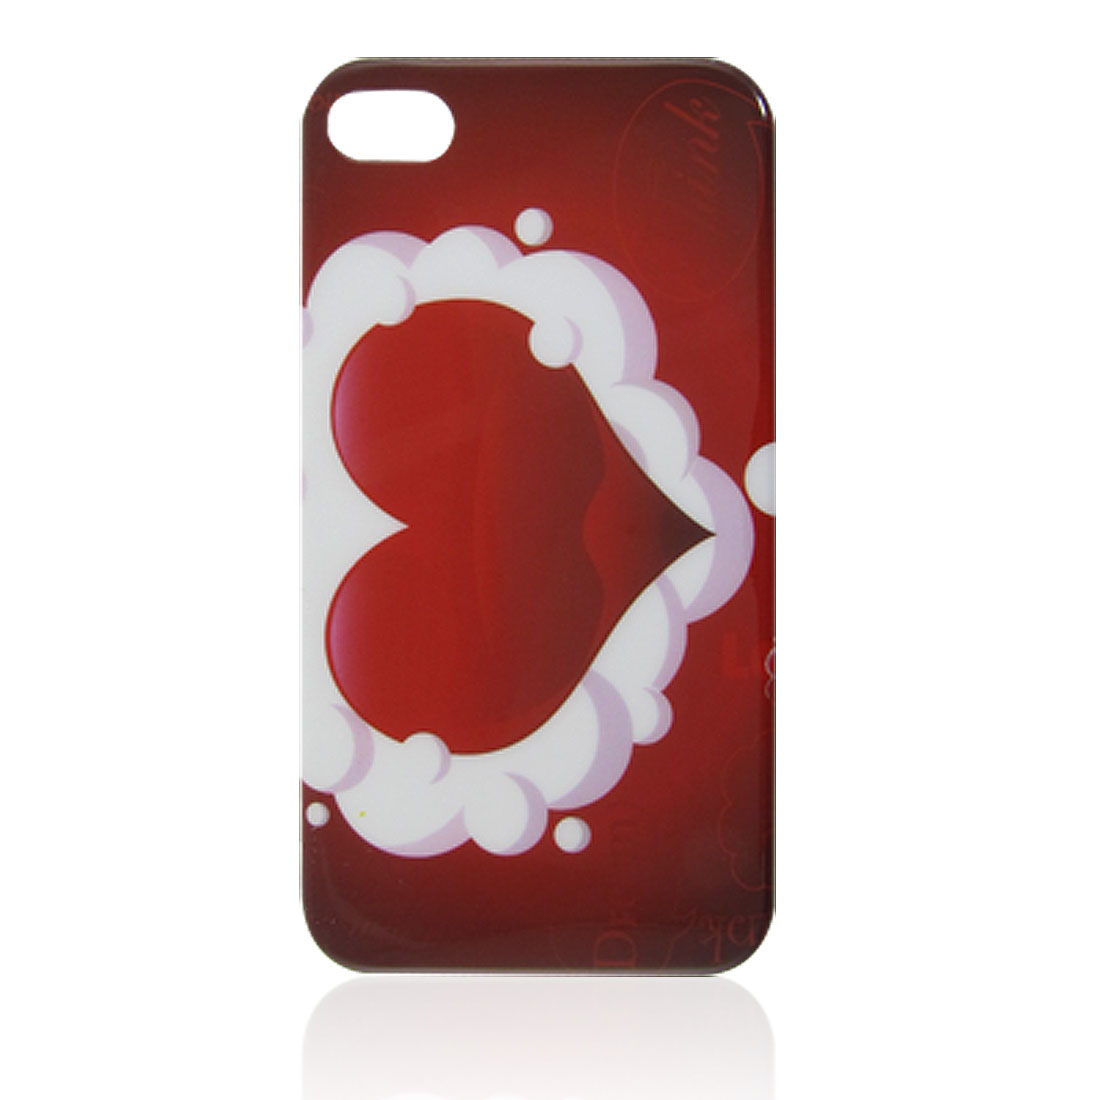 Red Heart Pattern IMD Hard Plastic Protective Back Cover for iPhone 4 4G 4S